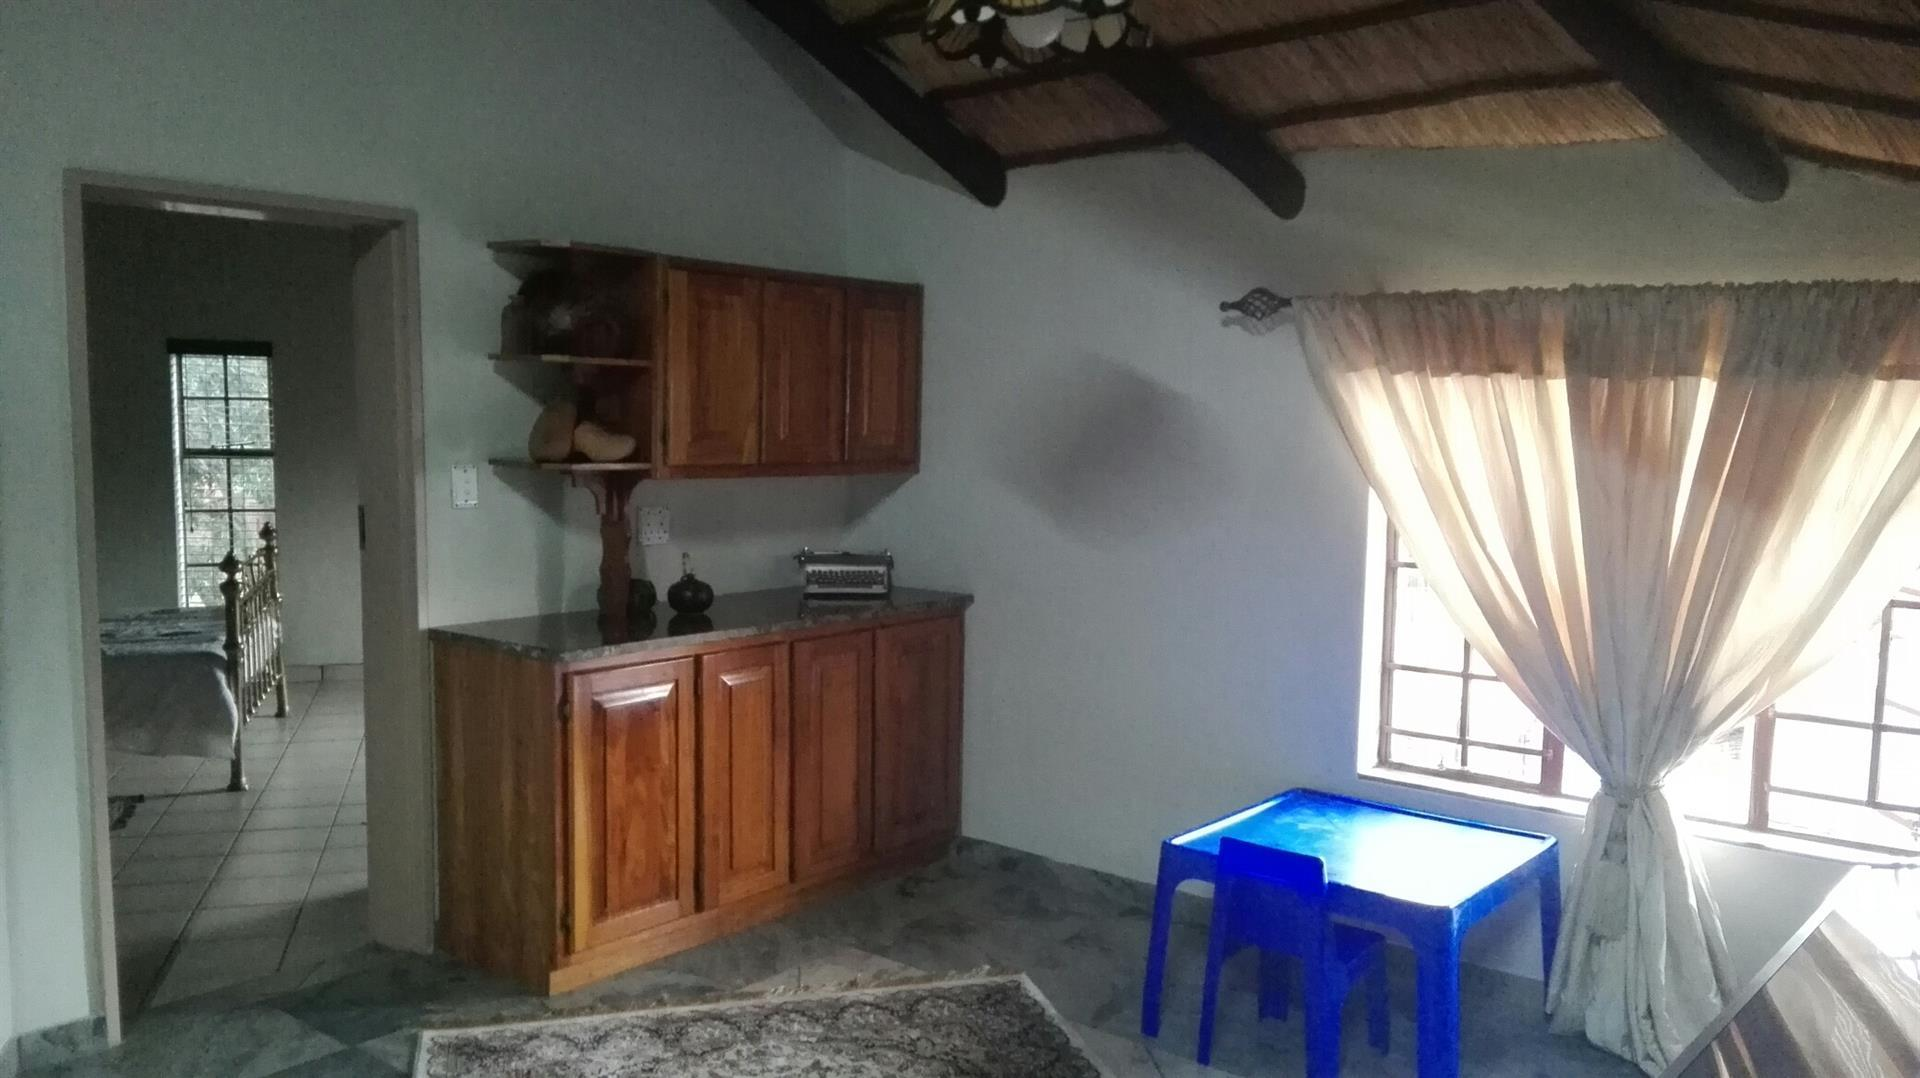 Zwartkop property for sale. Ref No: 13457293. Picture no 10